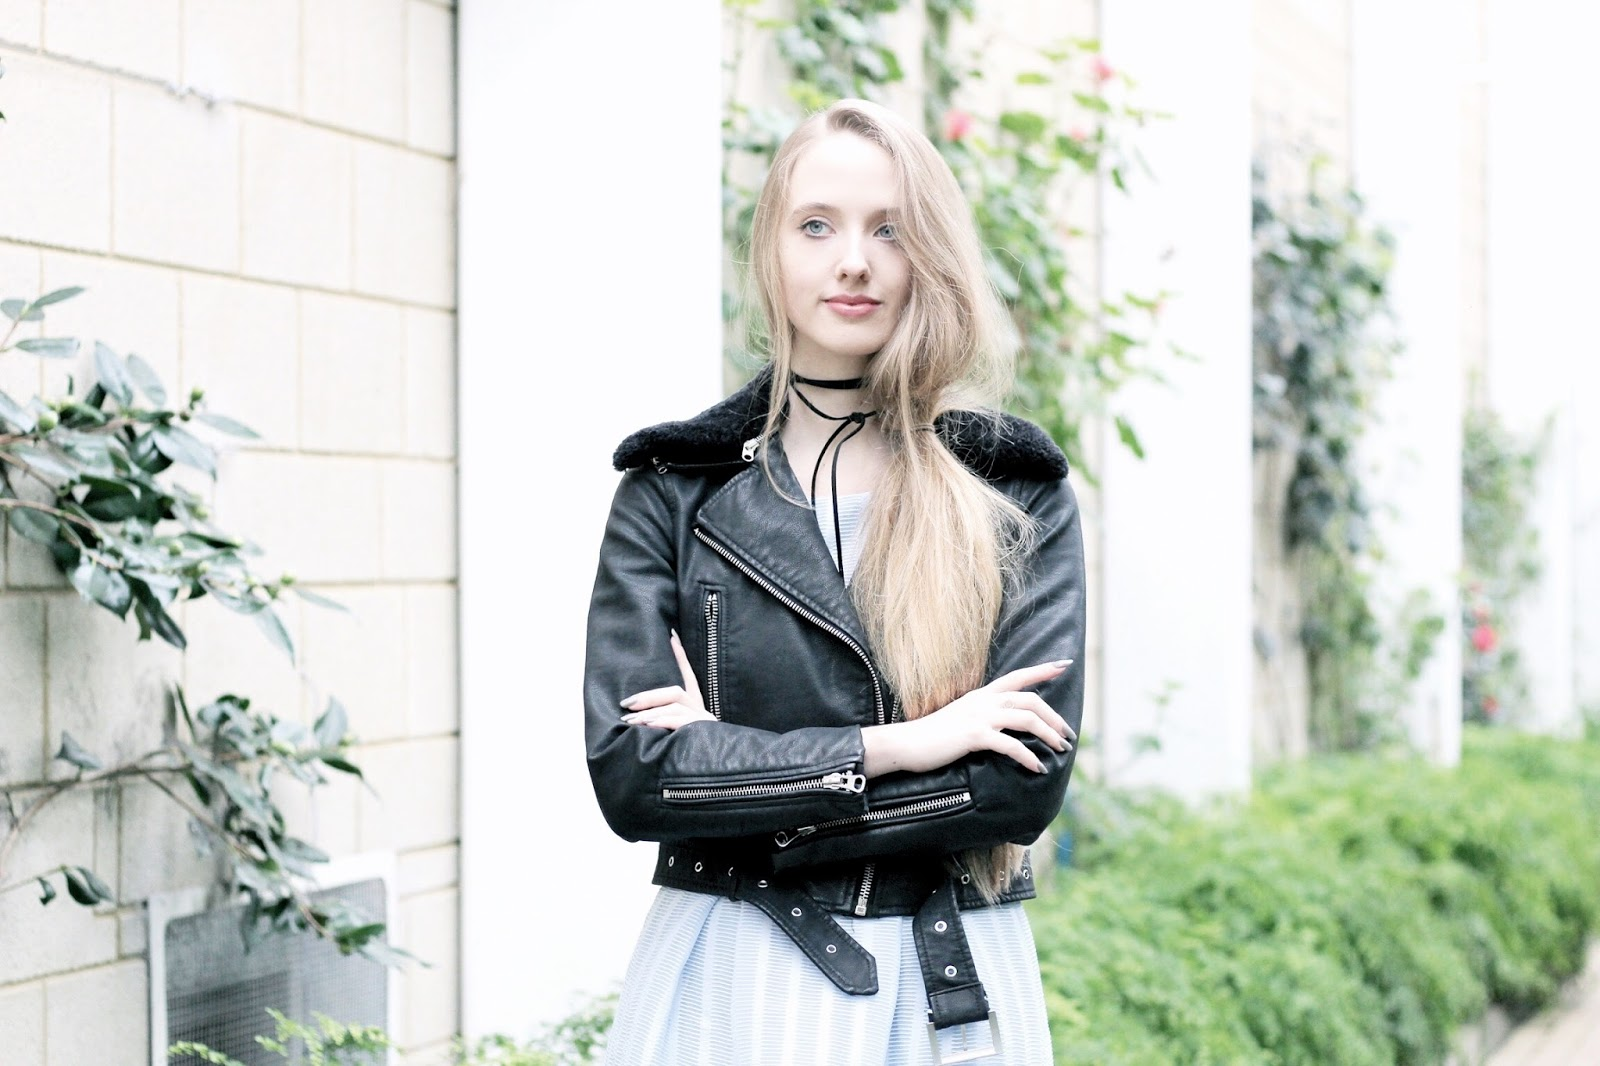 Styling a leather jacket with a pretty dress